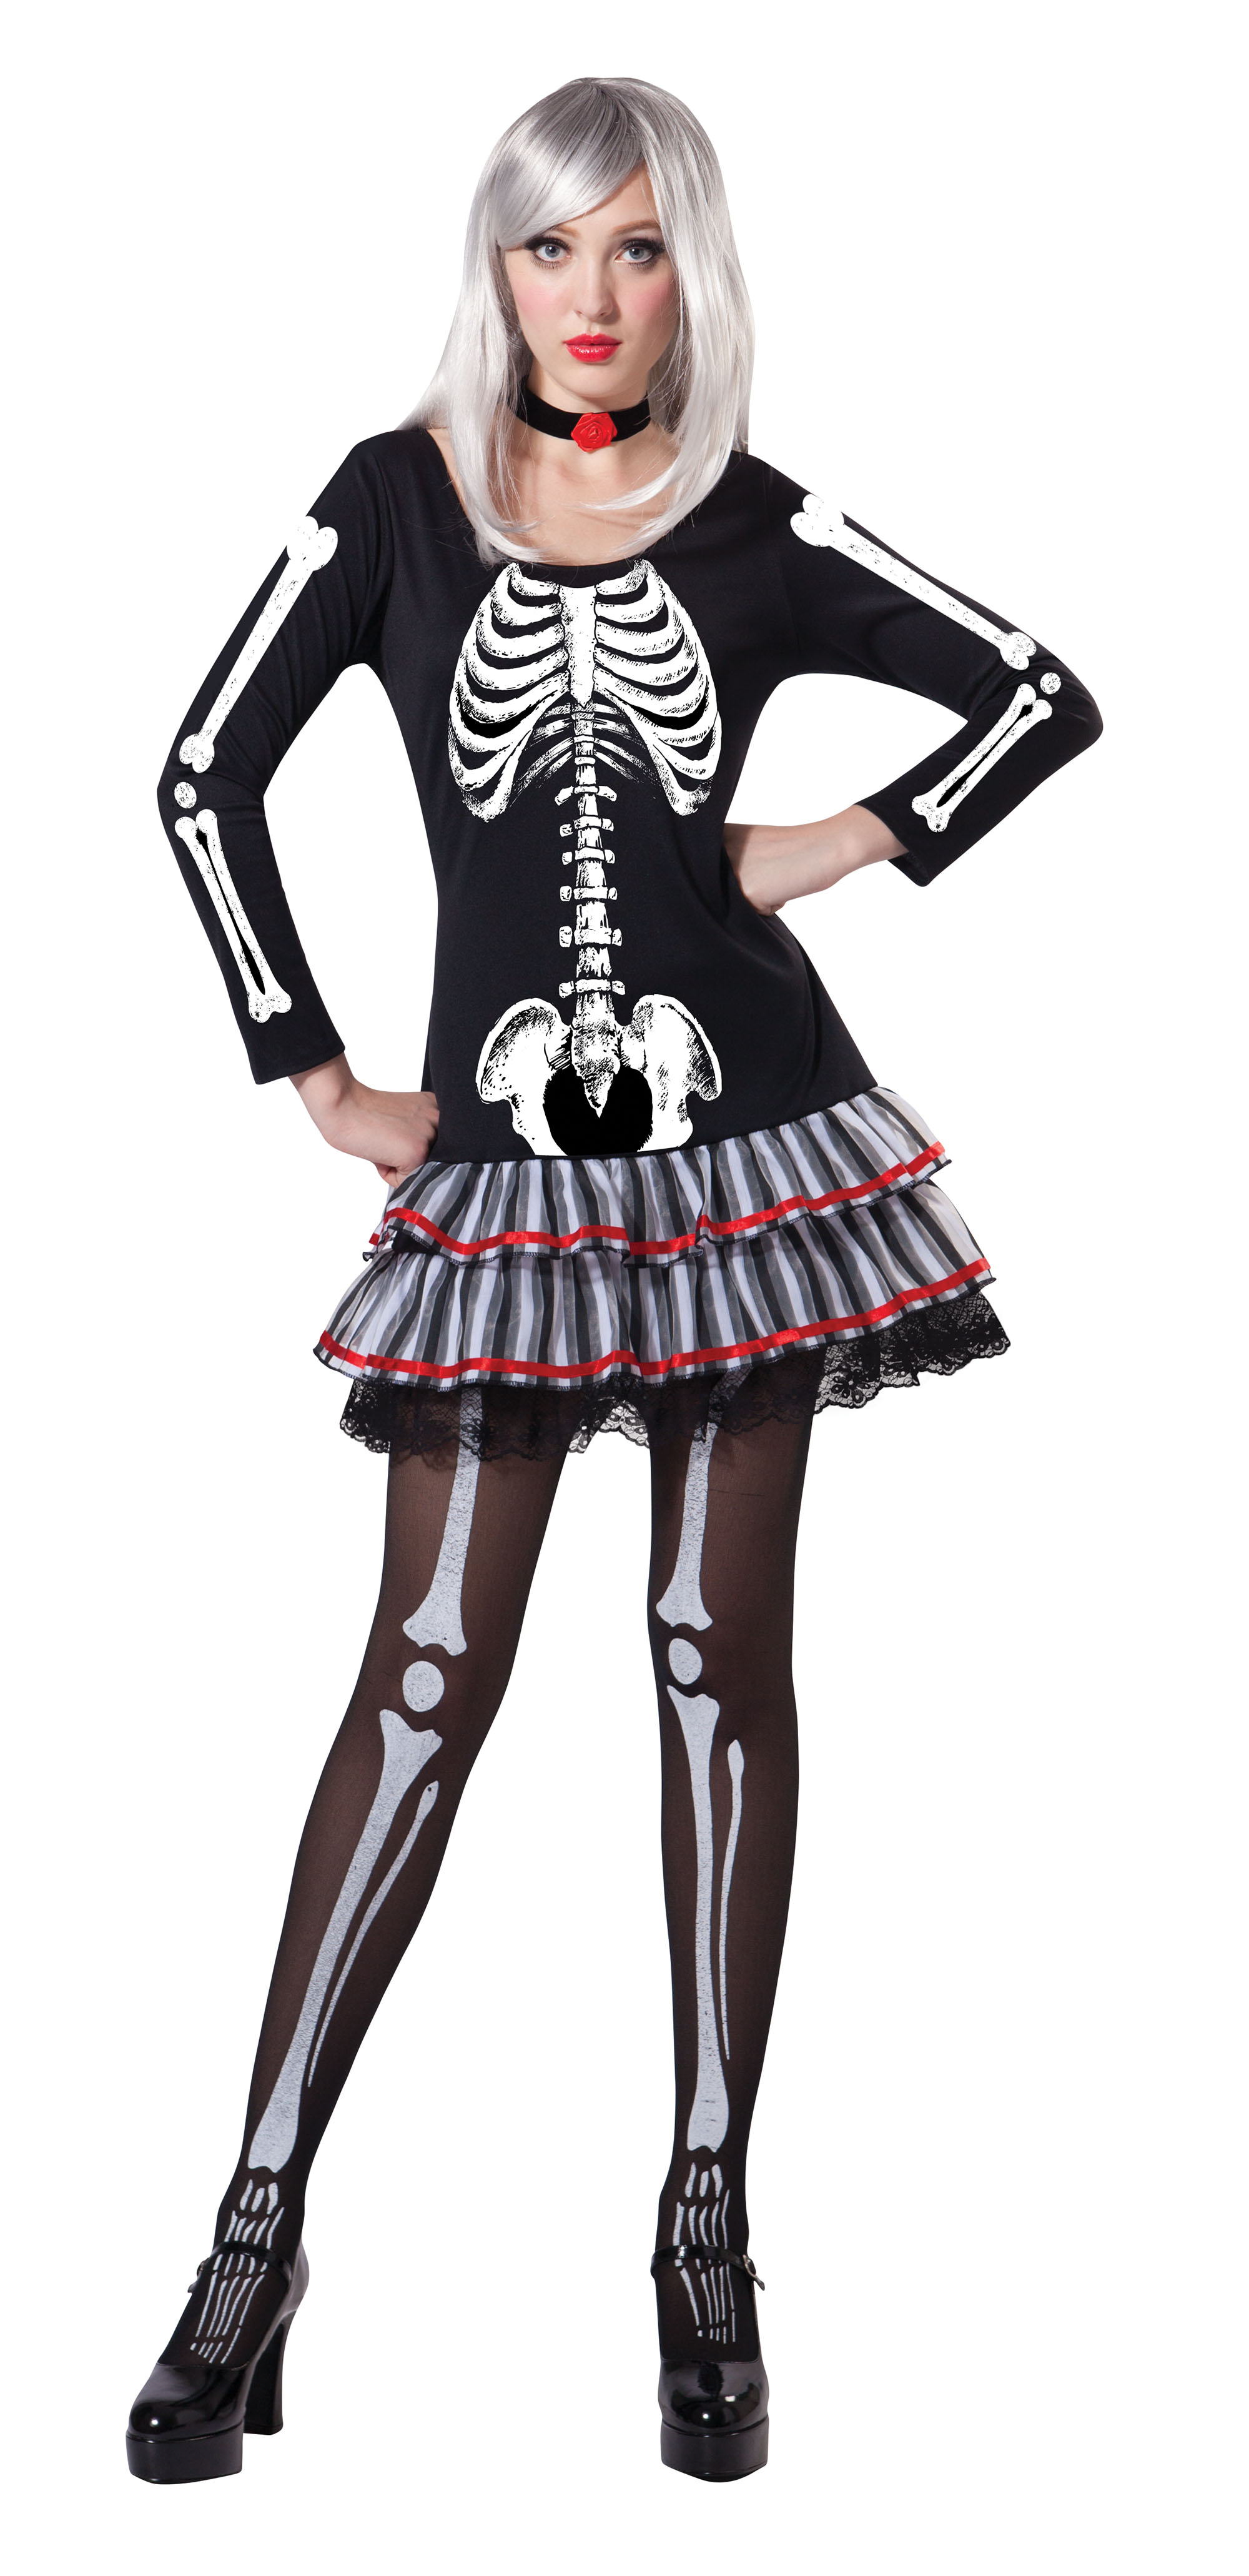 Ladies Womens Skeleton Fancy Dress Costume Scary Halloween Outfit UK 10-14